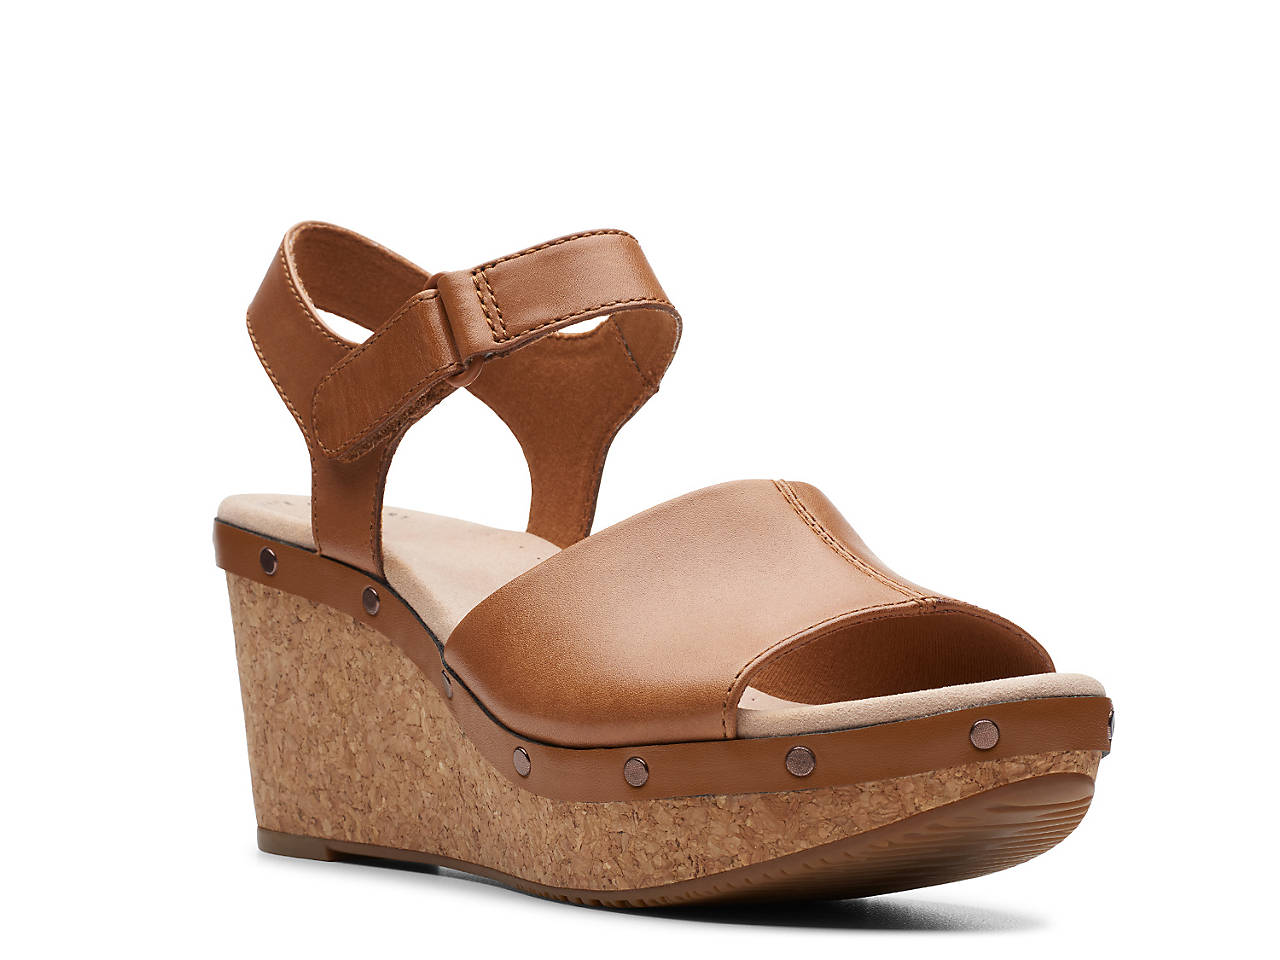 CLARKS Annadel Clover Wedge Sandals, Tan, 6 US 36 EU